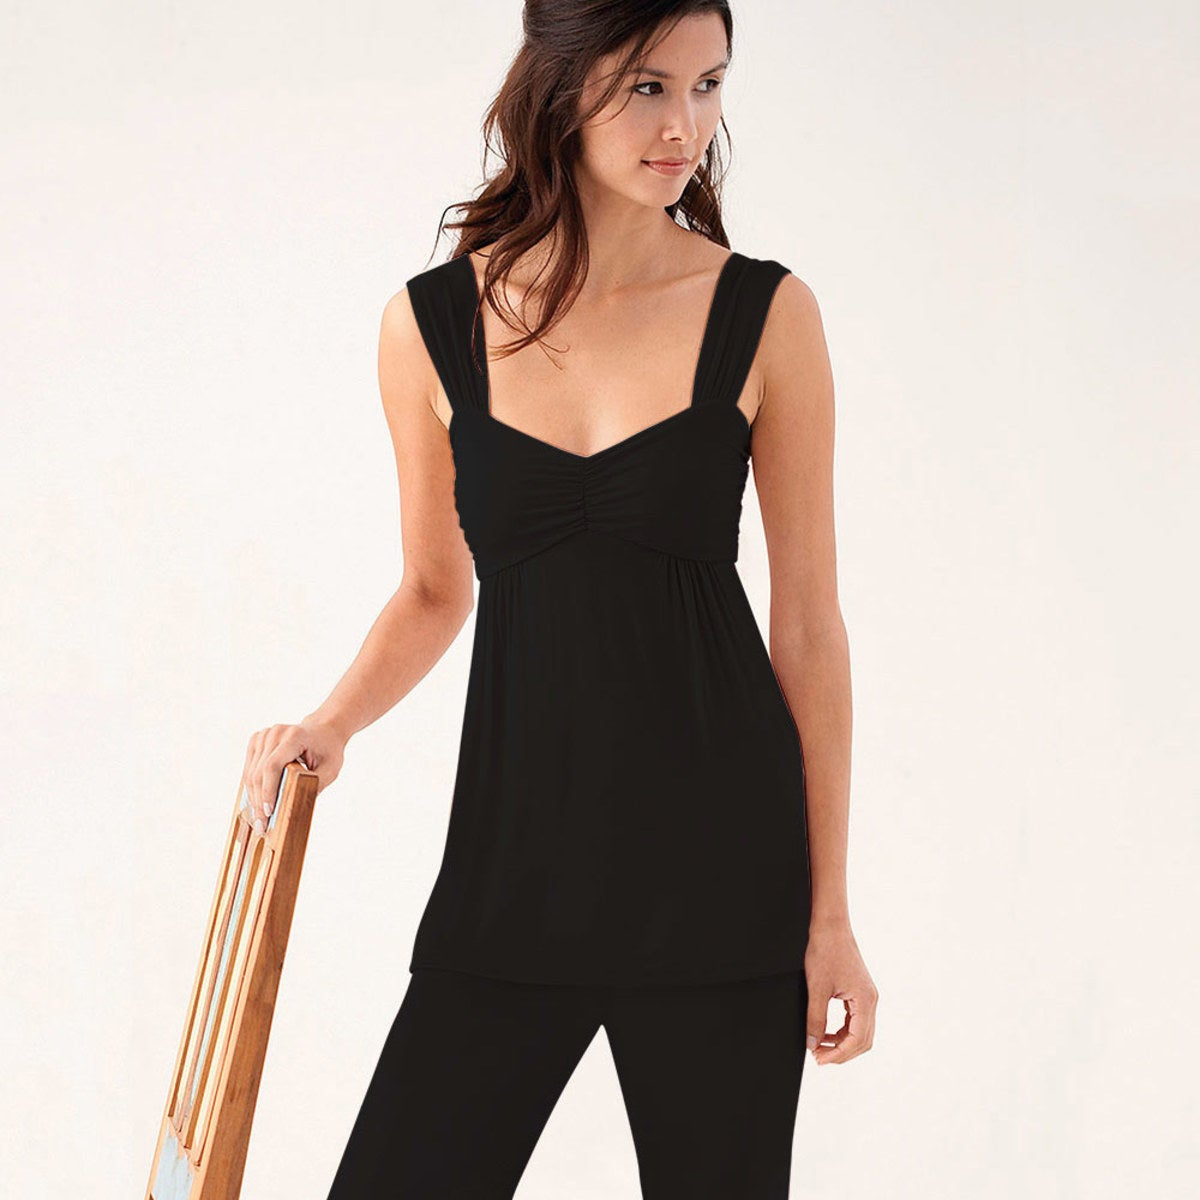 Eco-Weave Sleeveless Top & Cropped Pant Pajama Set - Black - XL